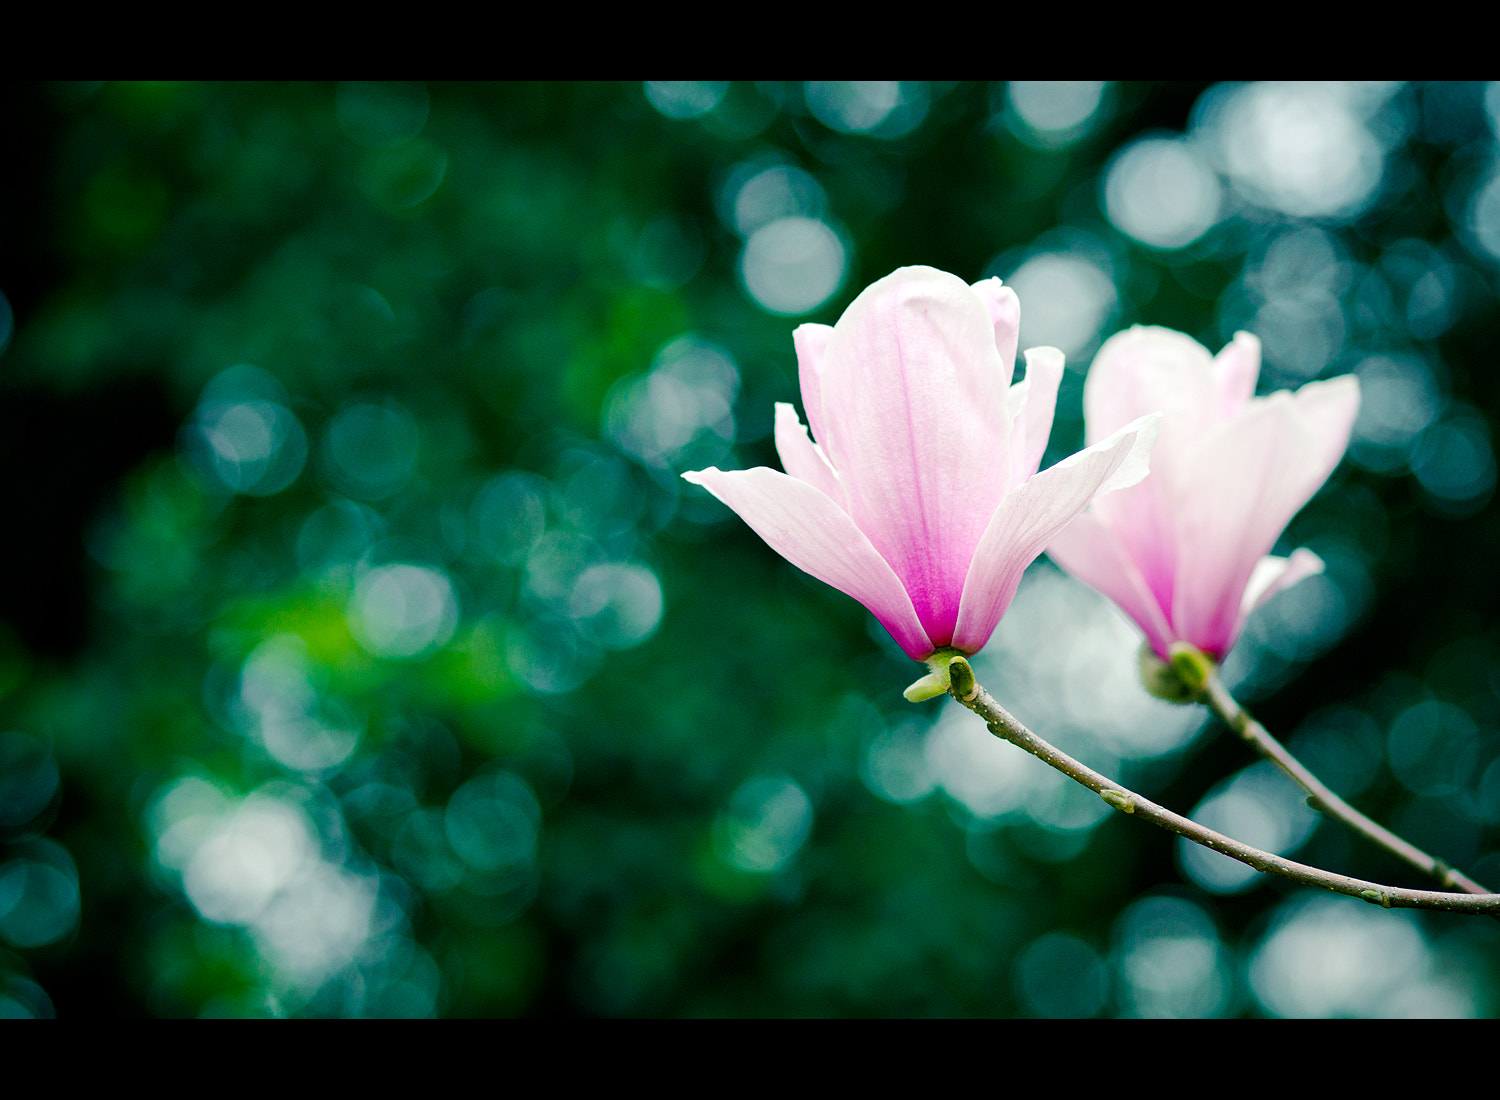 Photograph Untitled by LEE JUN on 500px